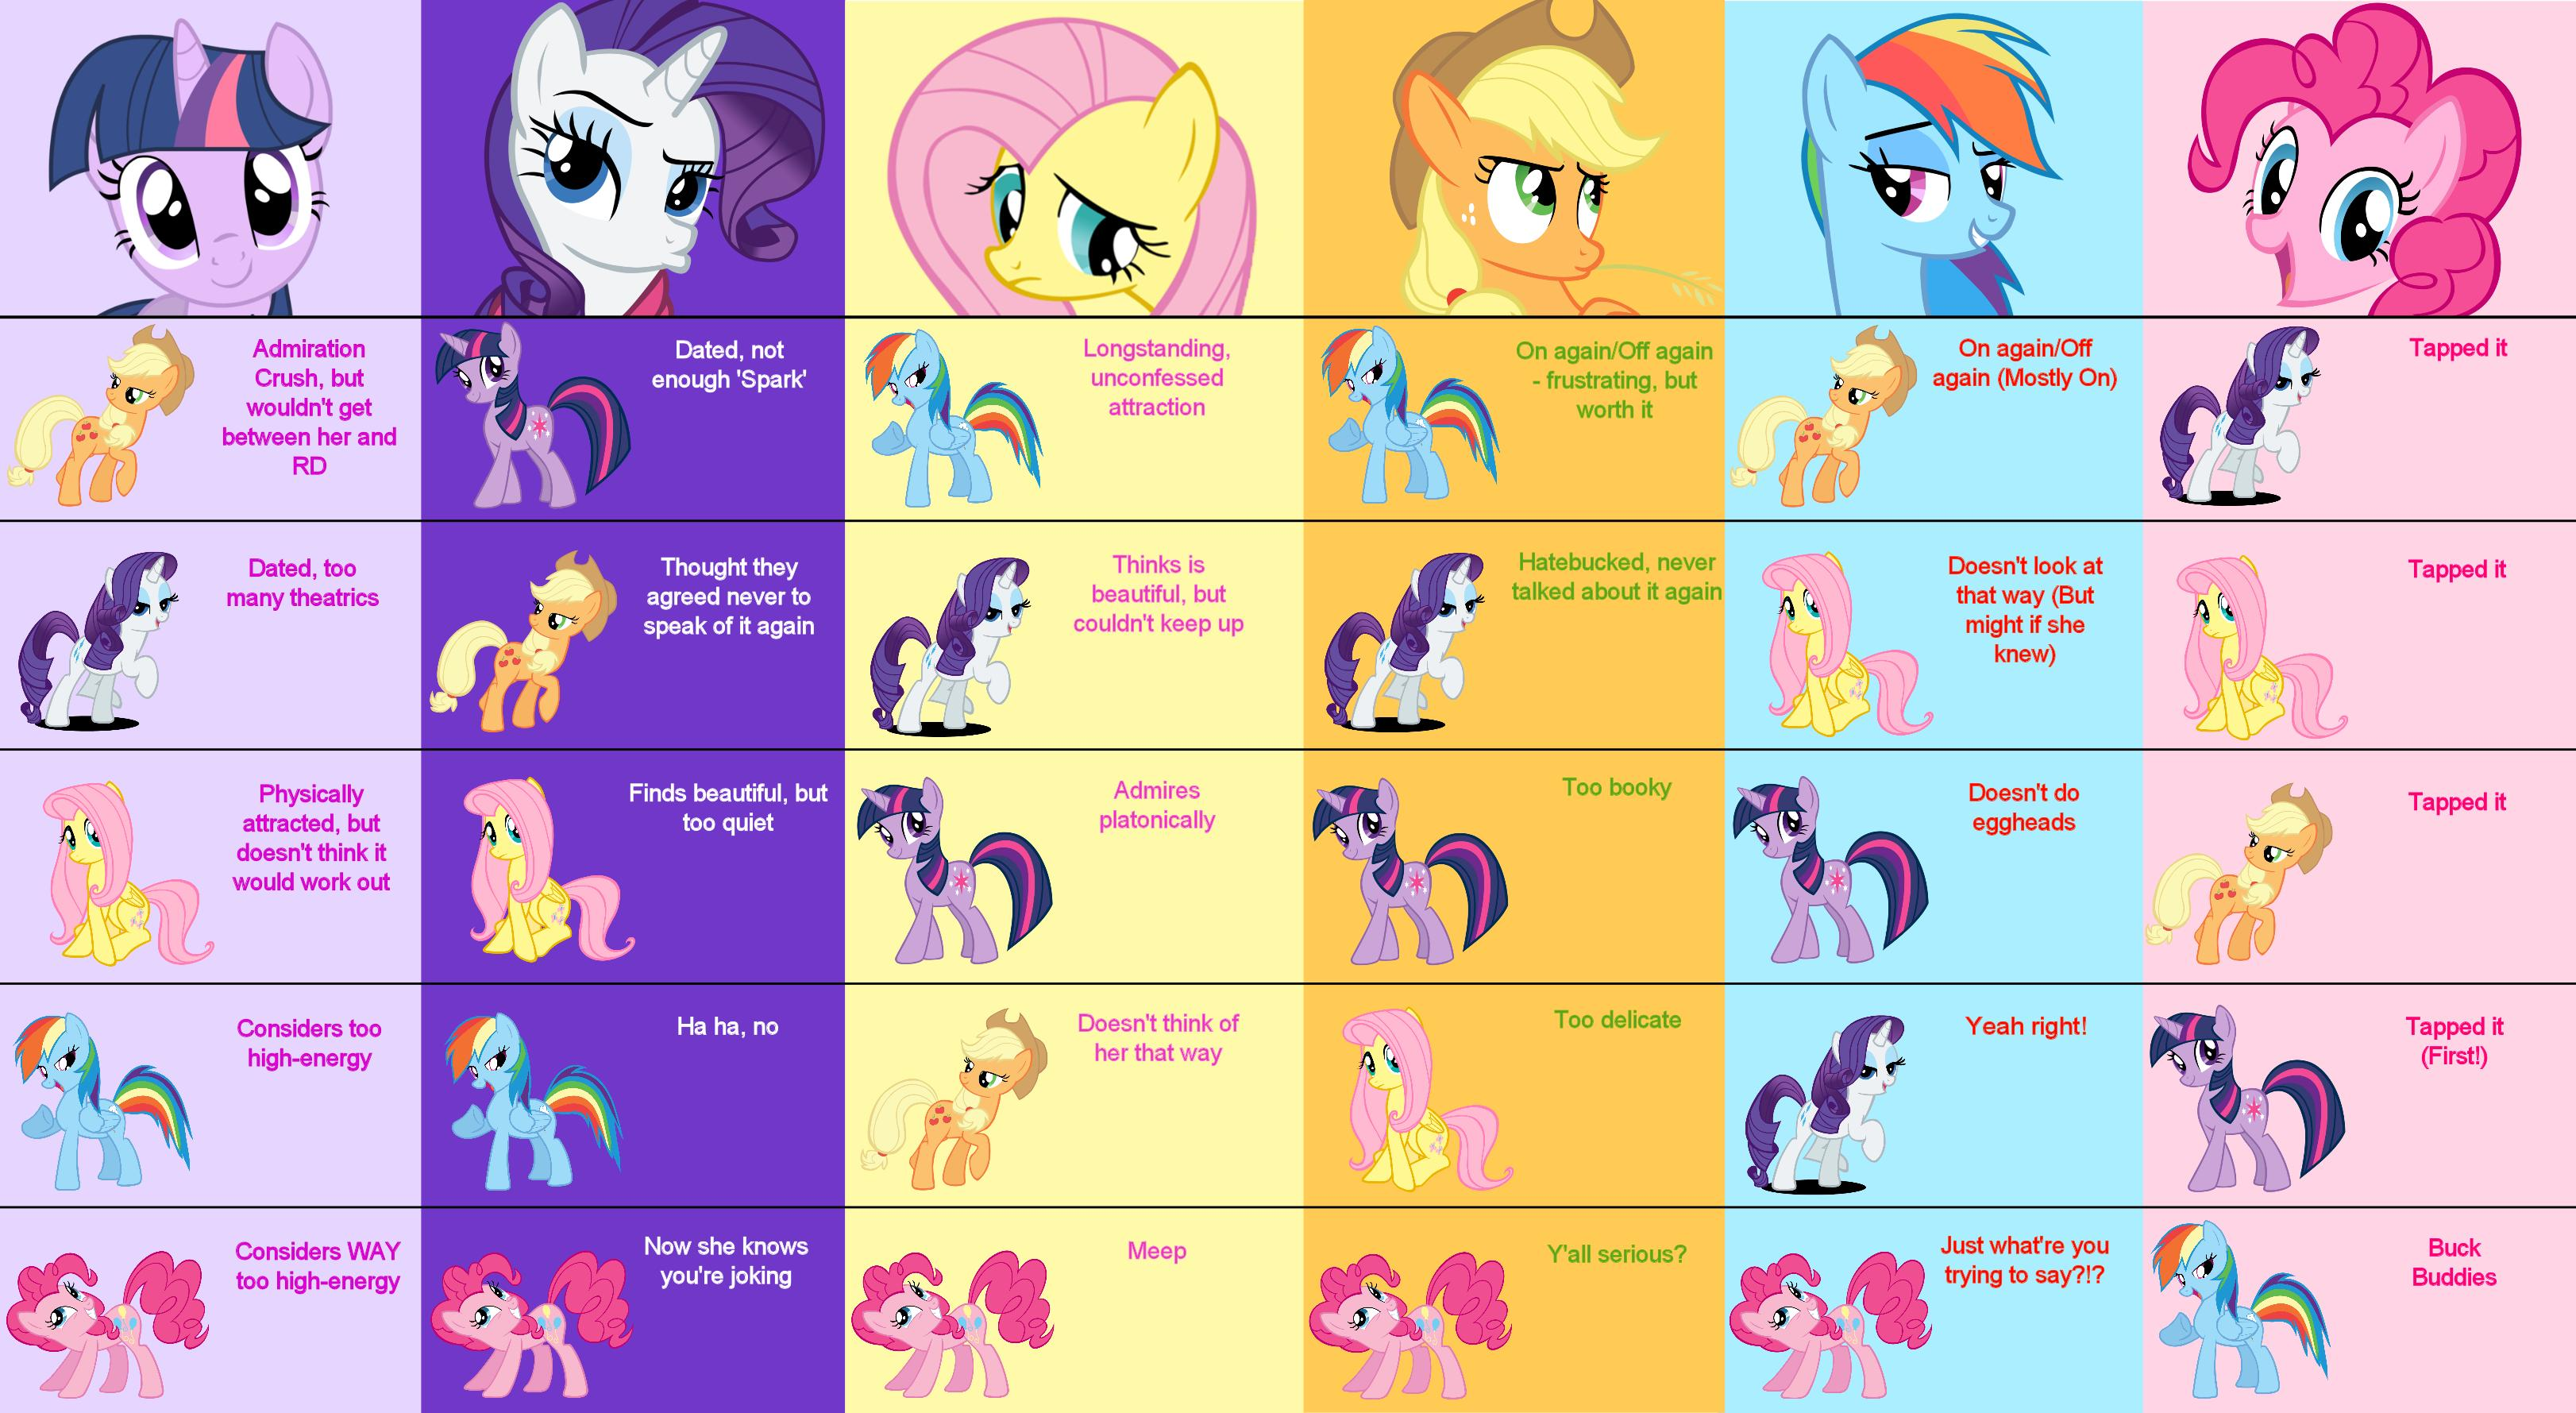 ad1 image 397593] my little pony friendship is magic know your meme,My Little Pony Memes